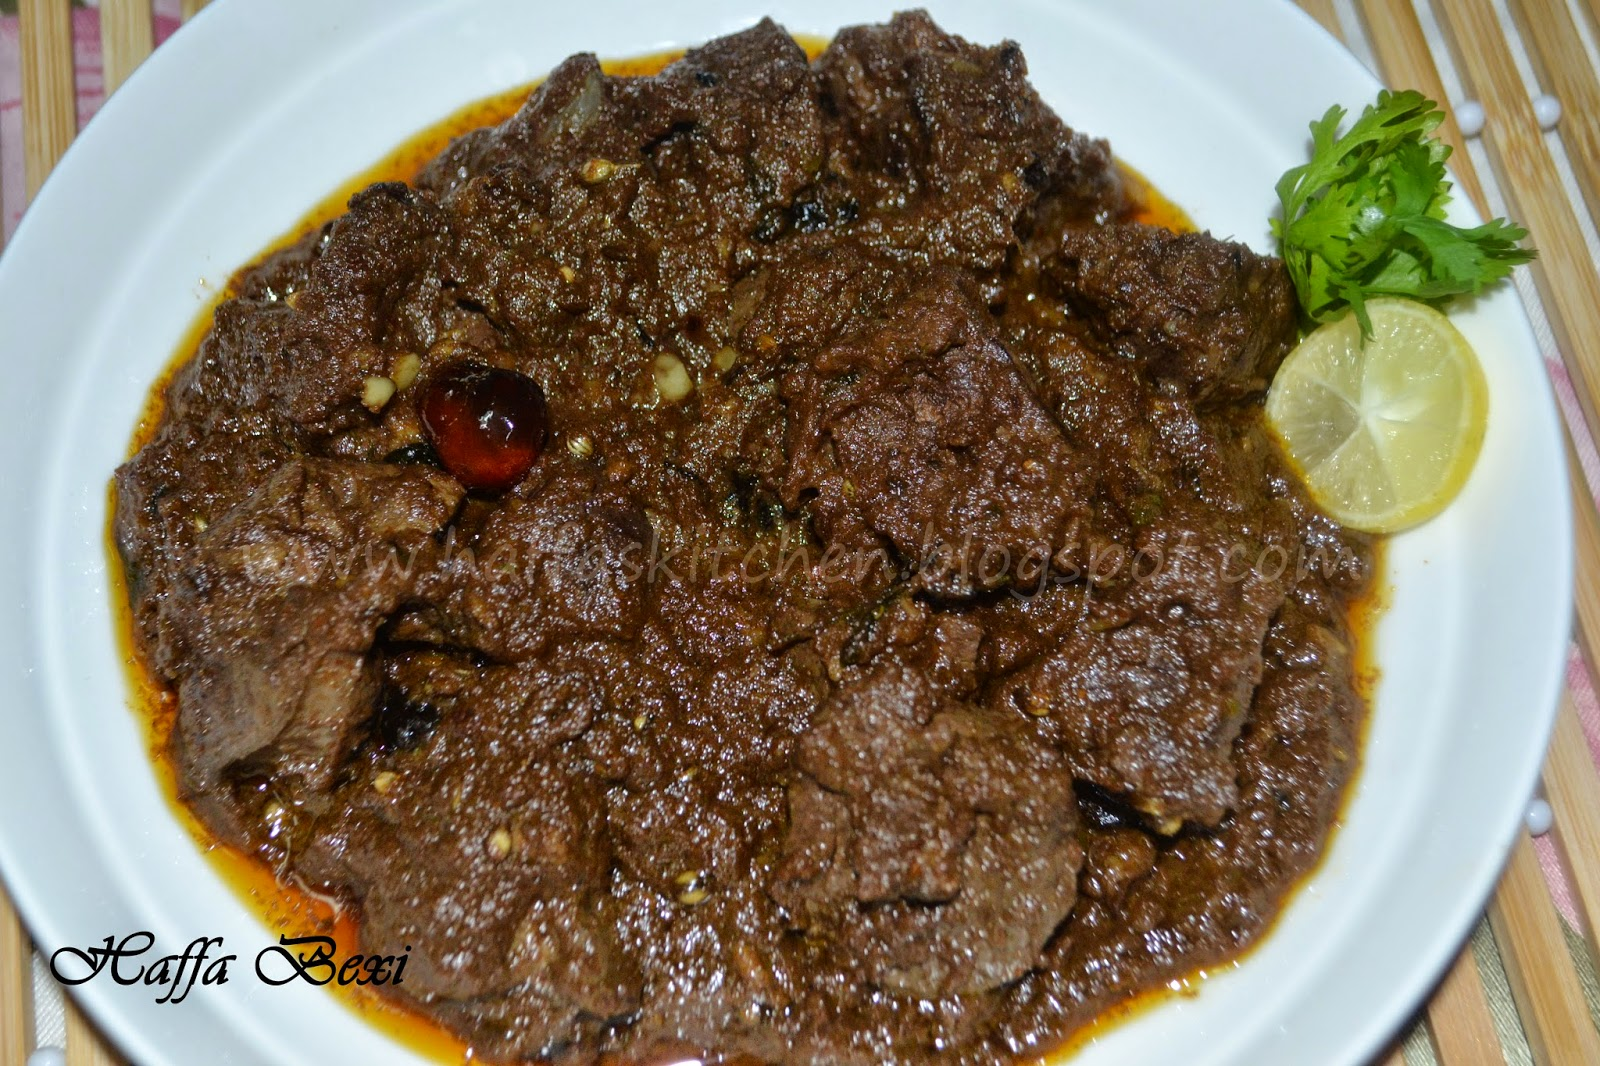 kaleji recipe| indian mutton curry recipe| Mutton Liver Curry|mutton liver recipe| beef liver recipes|  mutton liver recipes| Eid ul Azha recipes| Kaleji Masala| kaleji recipes| Kaleji Gurday recipe| Kaleji fry|